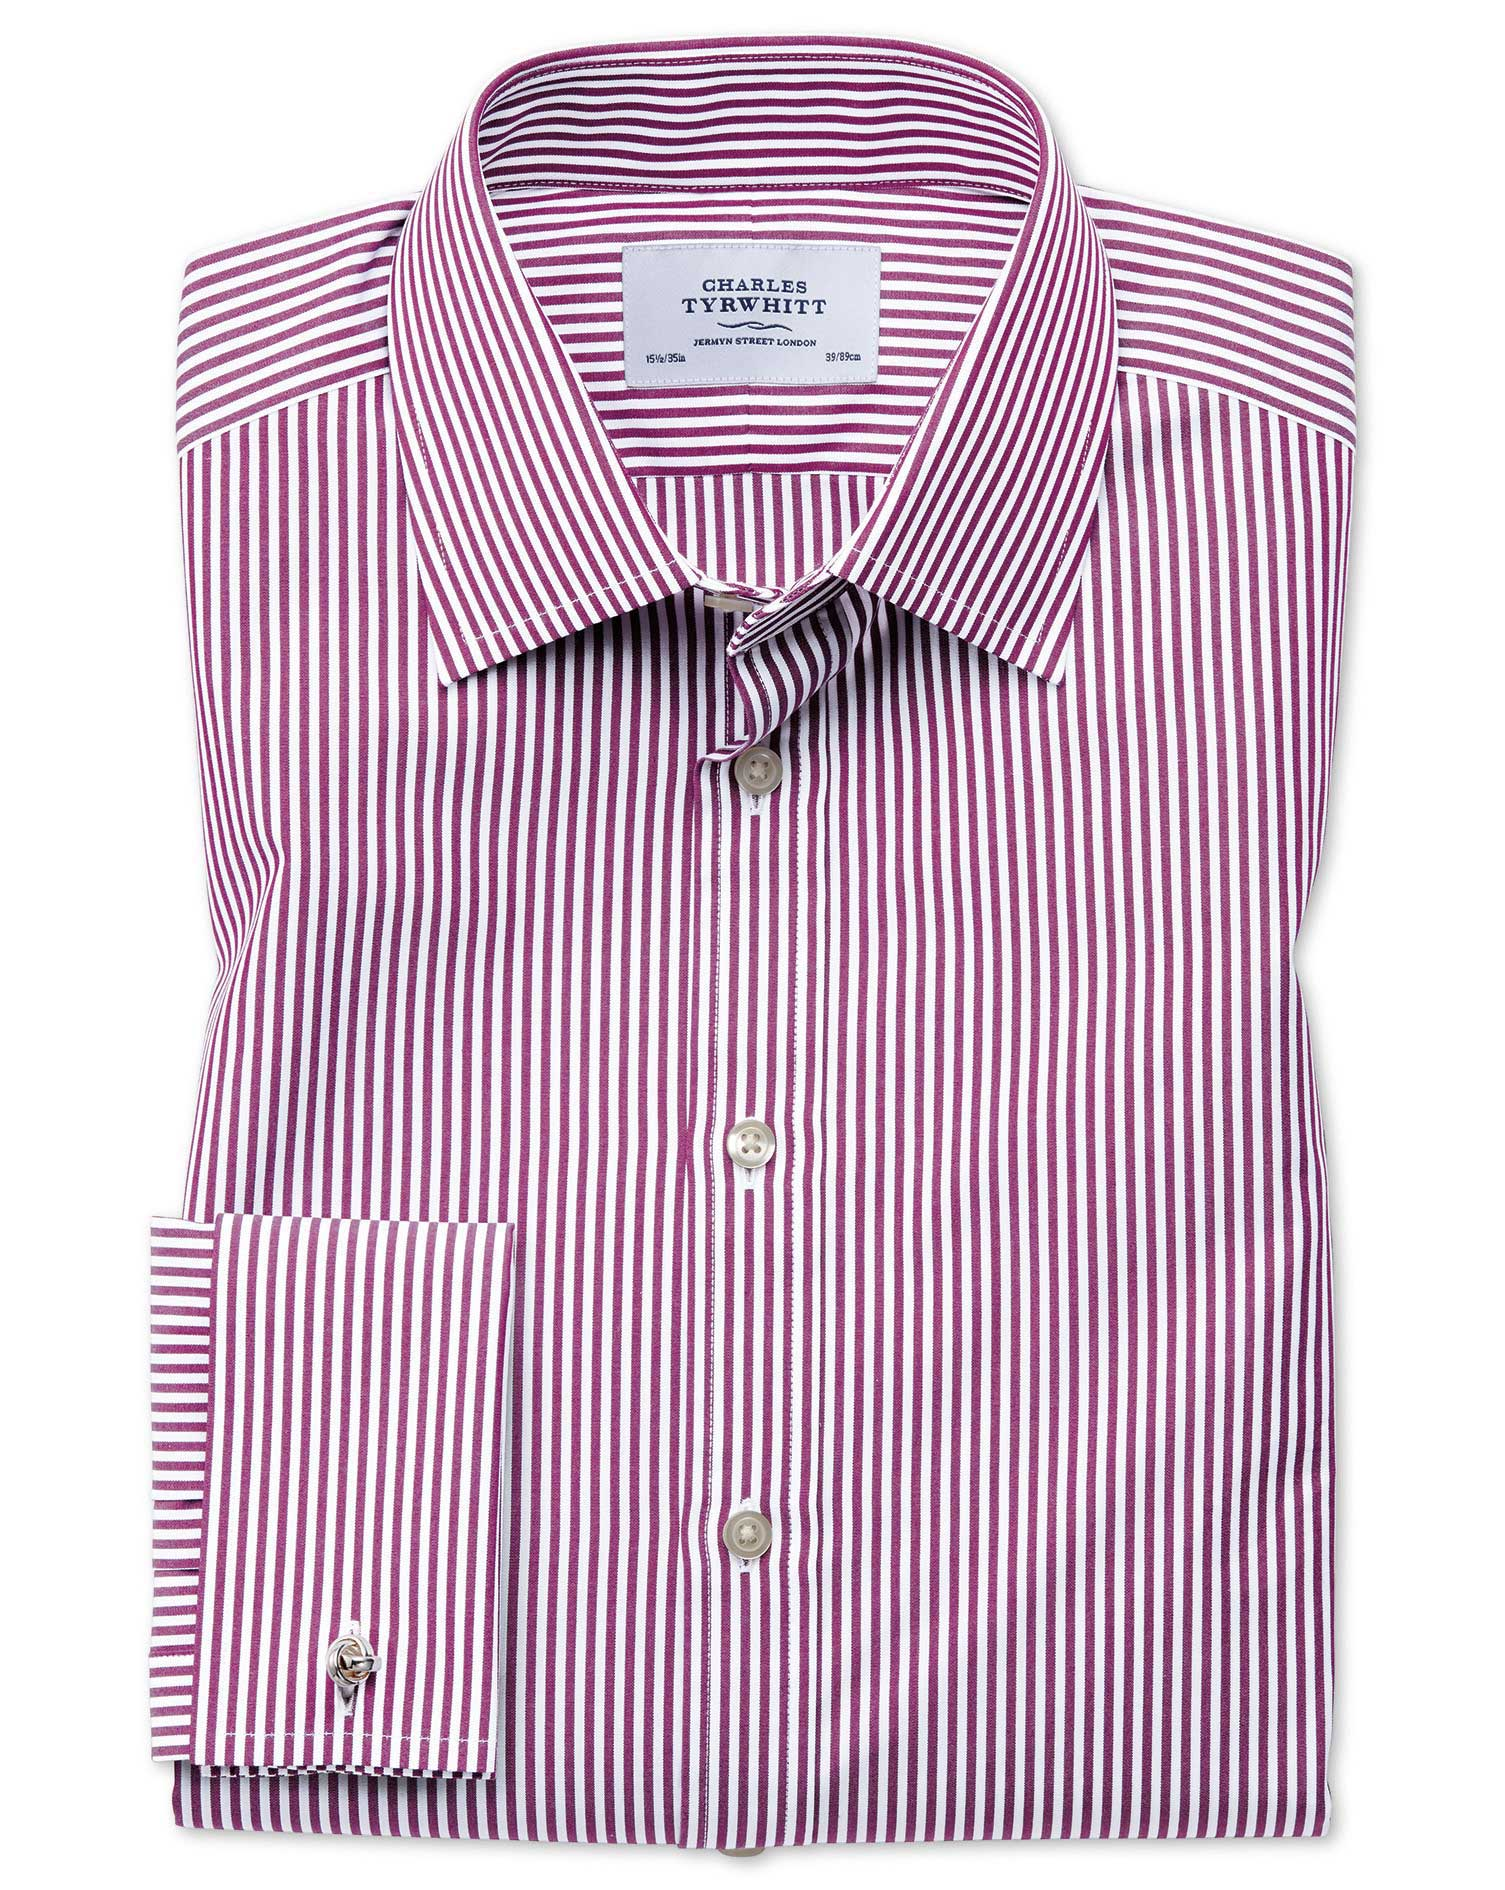 Classic Fit Bengal Stripe Purple Cotton Formal Shirt Double Cuff Size 15.5/33 by Charles Tyrwhitt